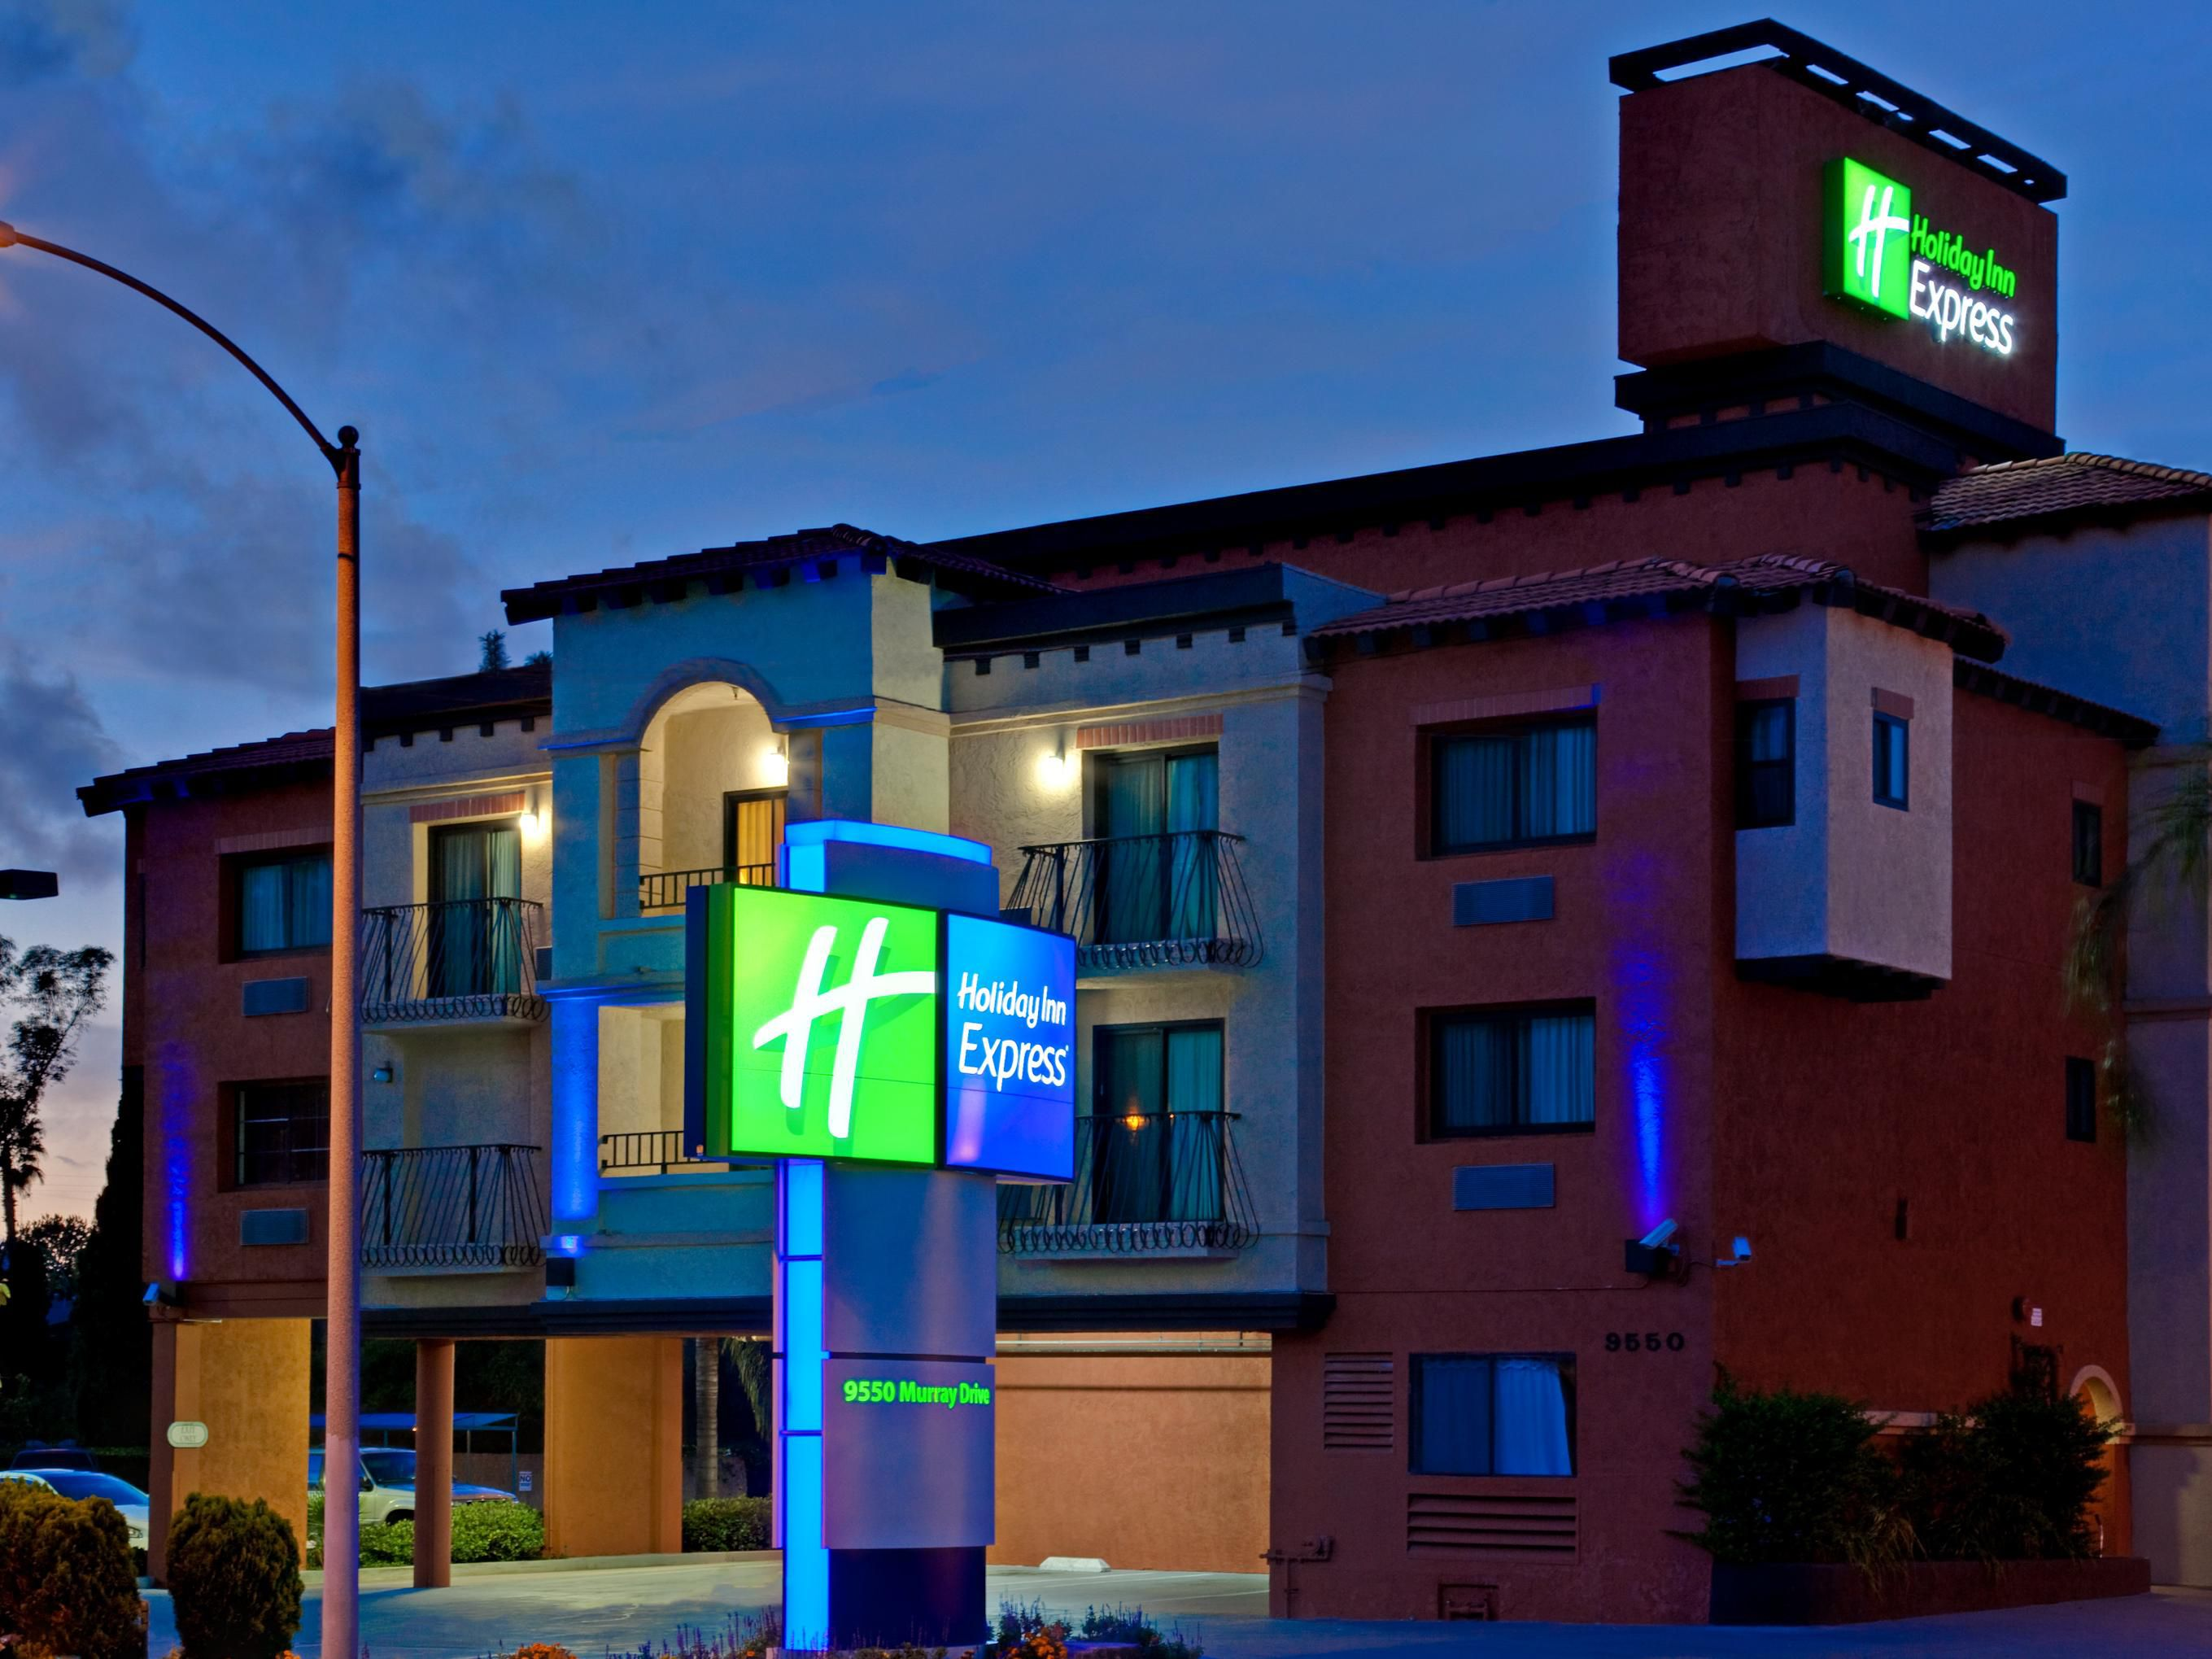 Holiday Inn Express La Mesa-Exterior Feature